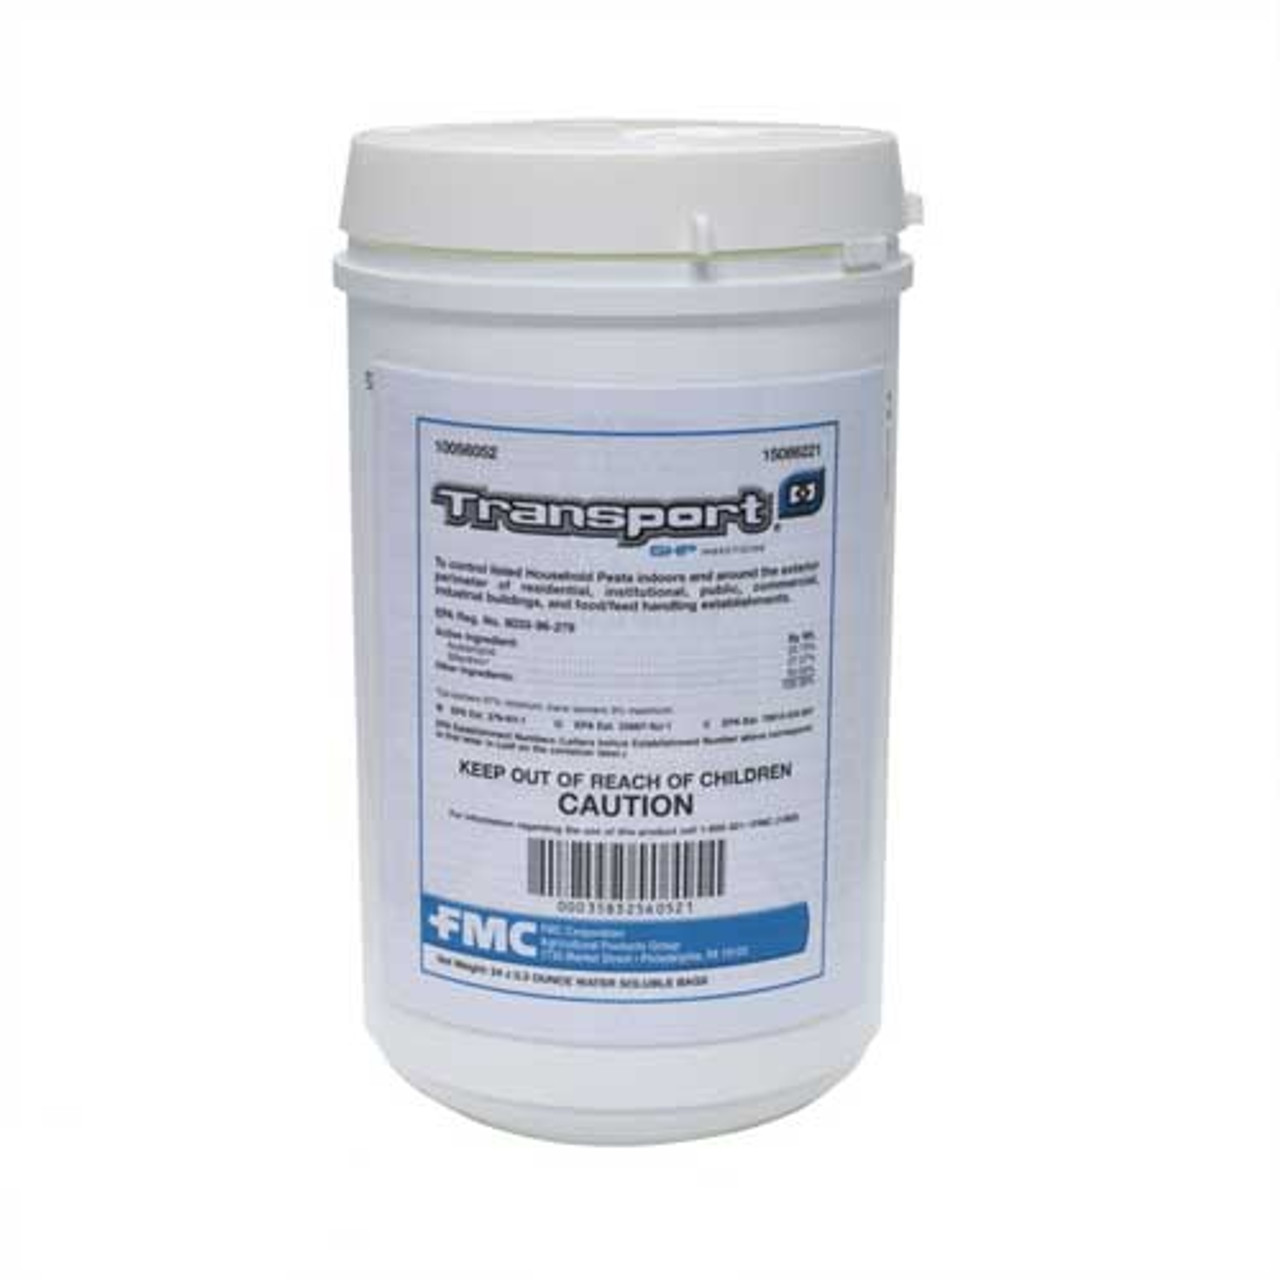 Transport GHP Insecticide